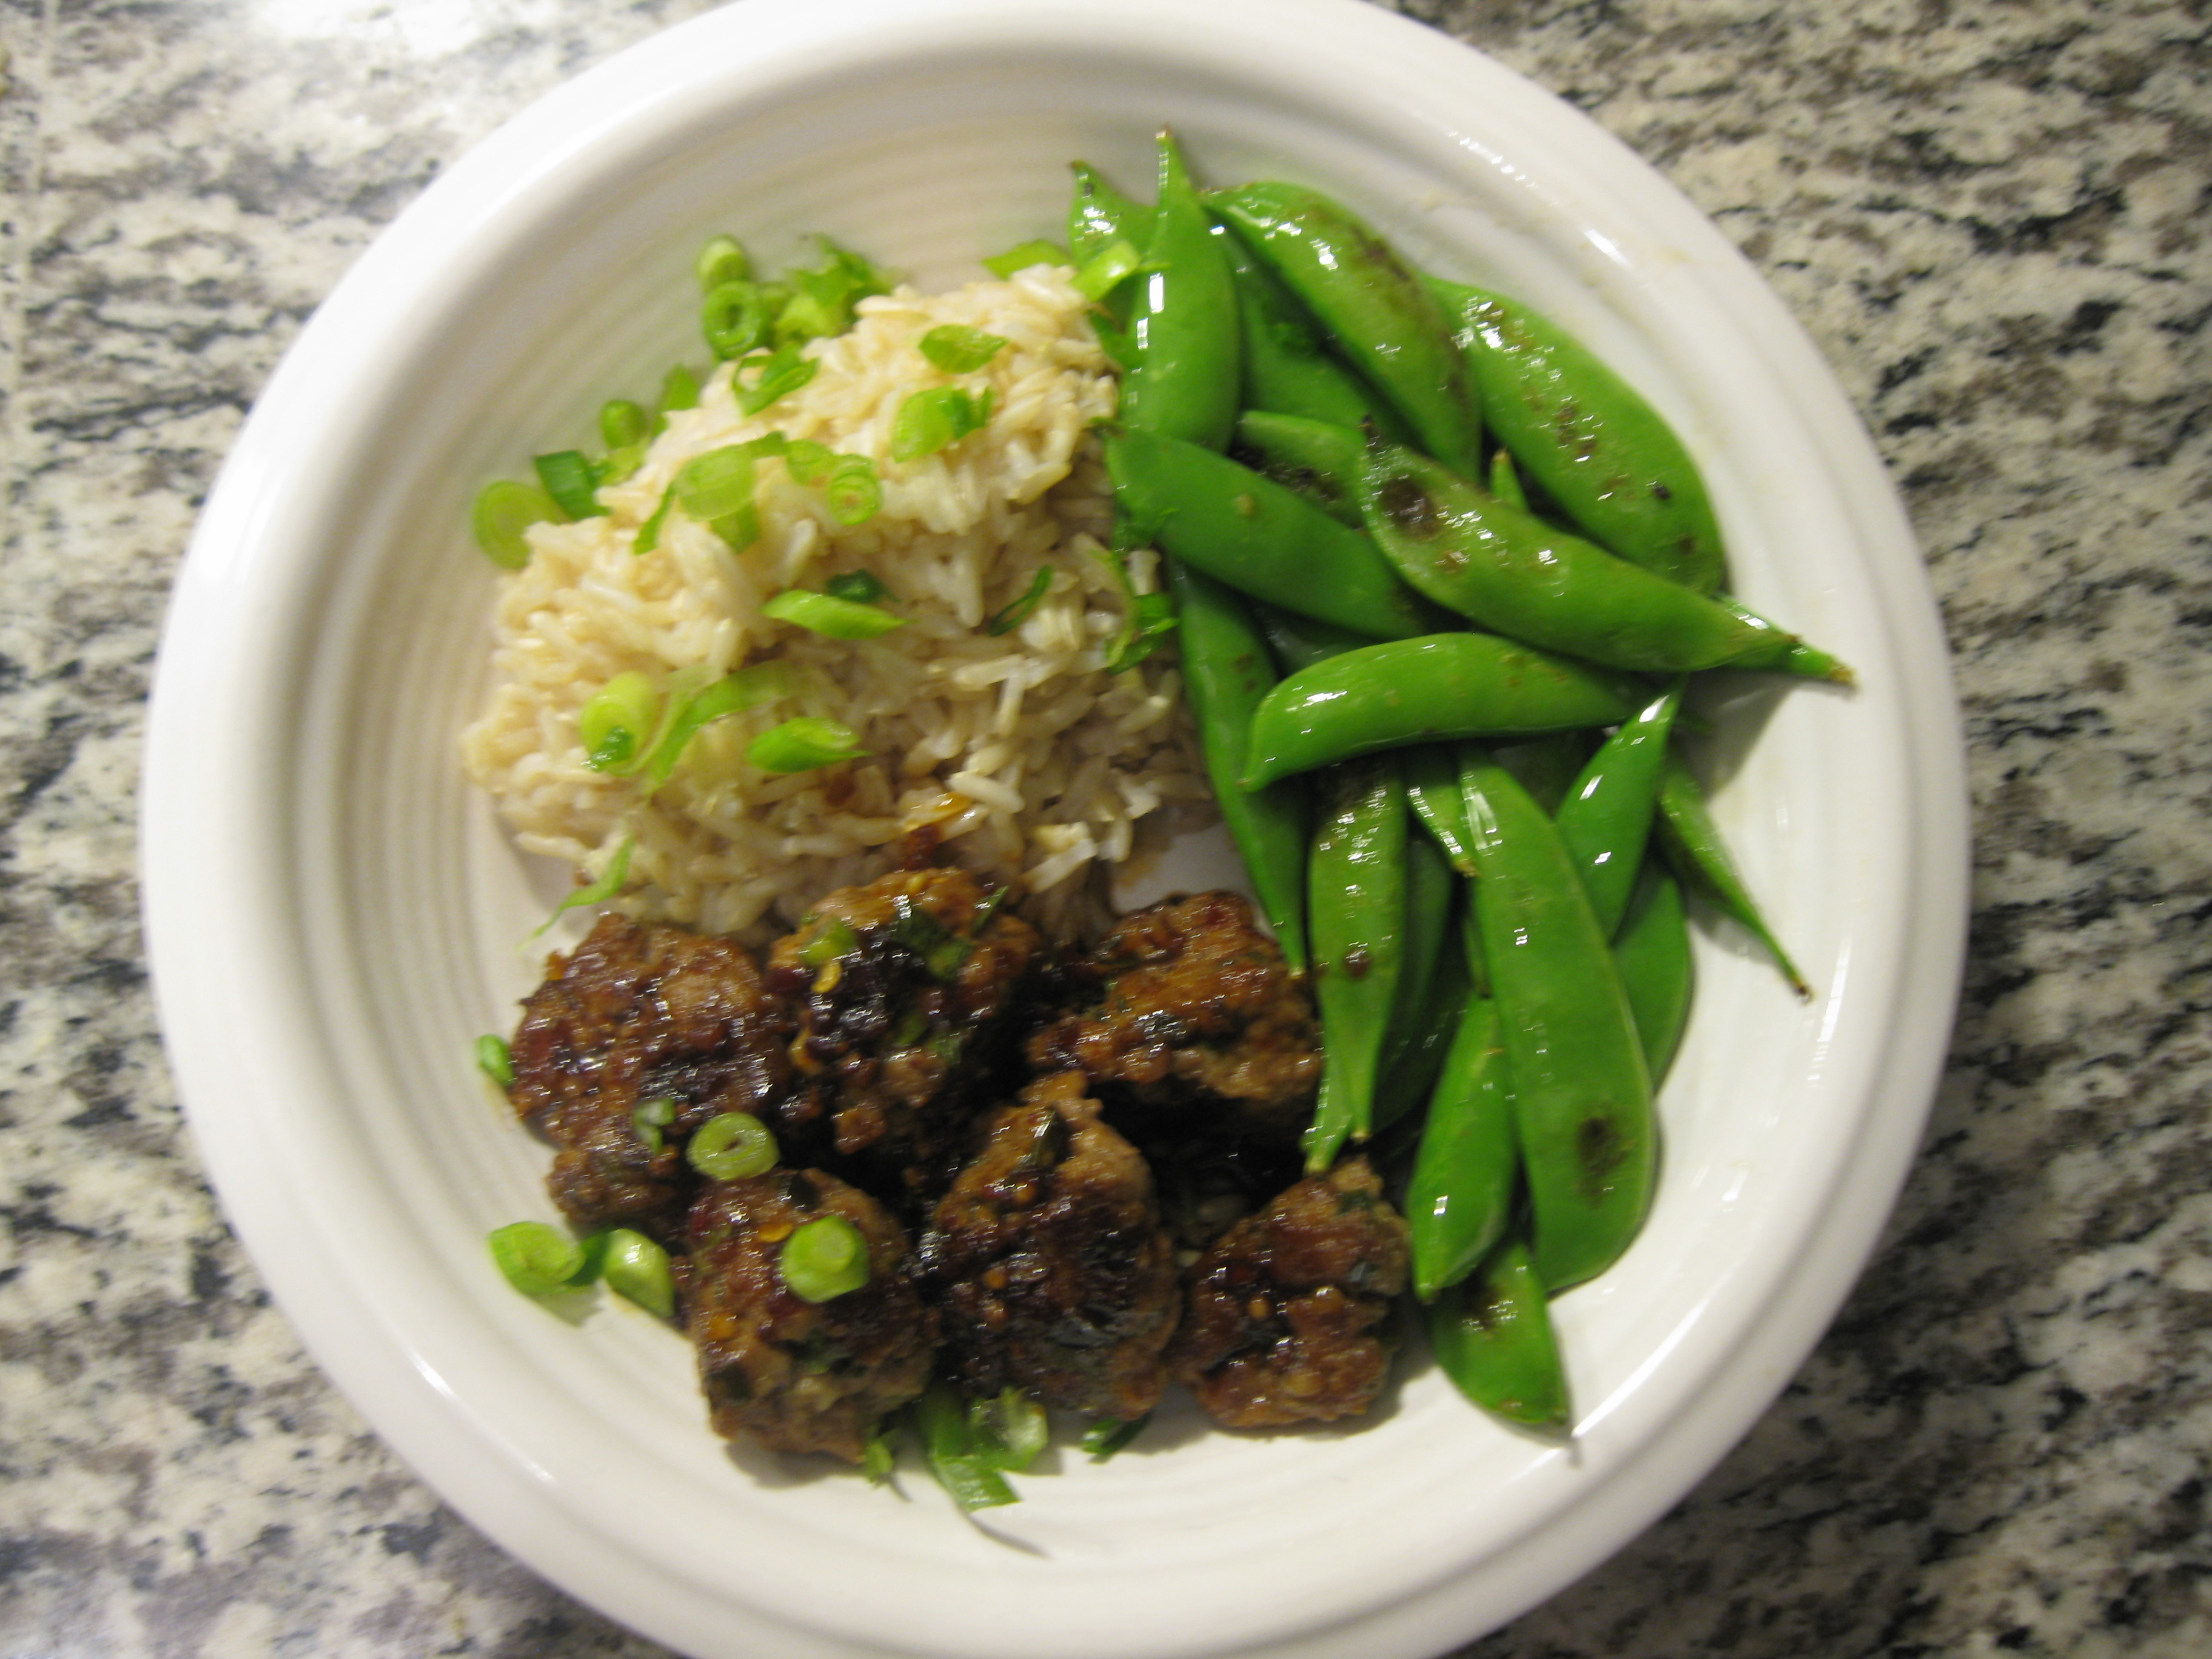 Recipe 16.2: Sesame Soy Meatballs with Brown Rice and Sugar Snap Peas